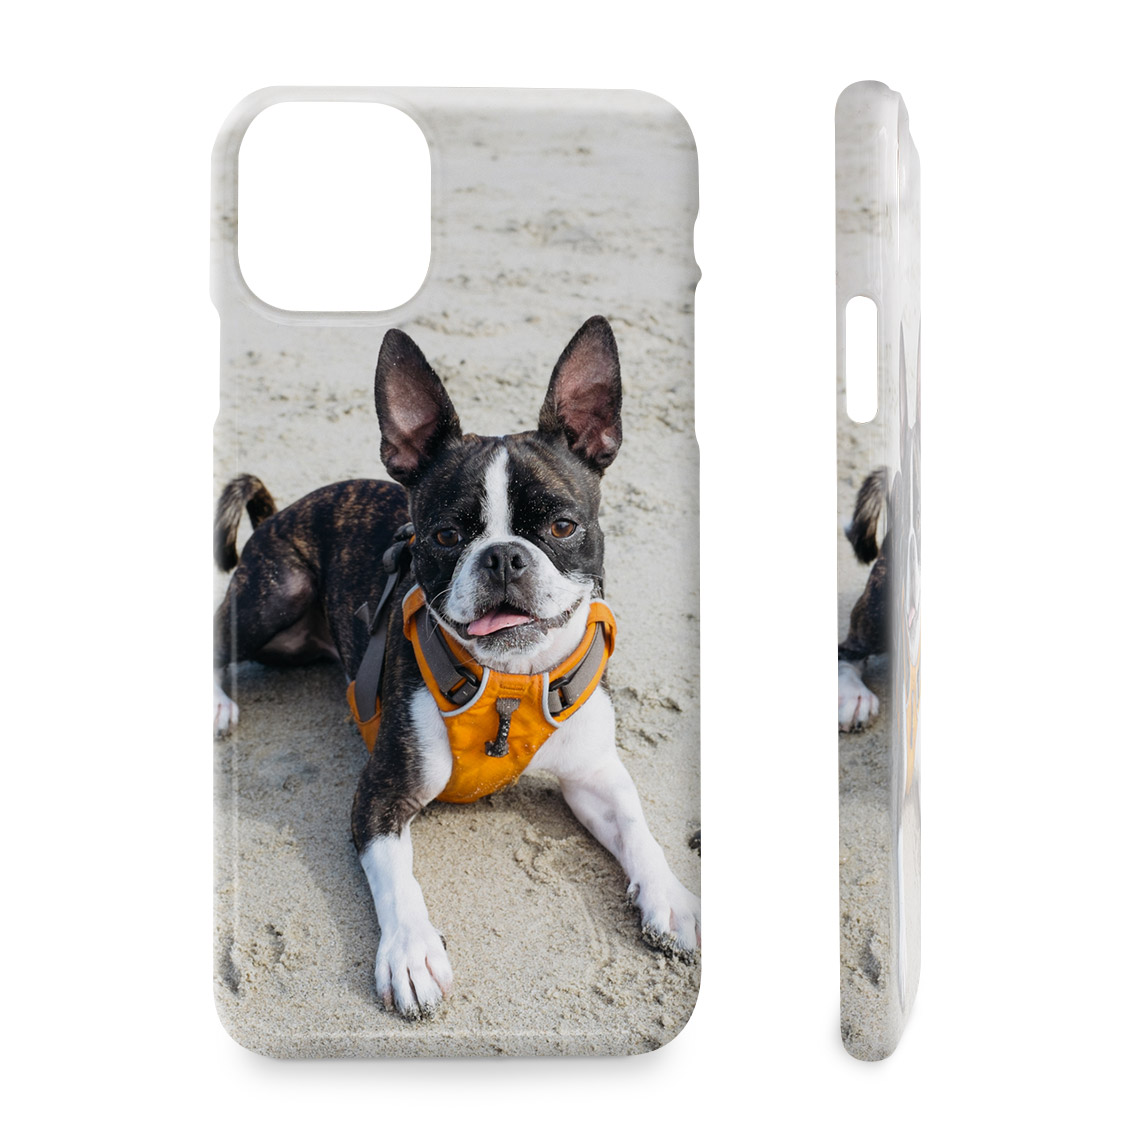 Personalised Iphone 11 Pro Max Cases